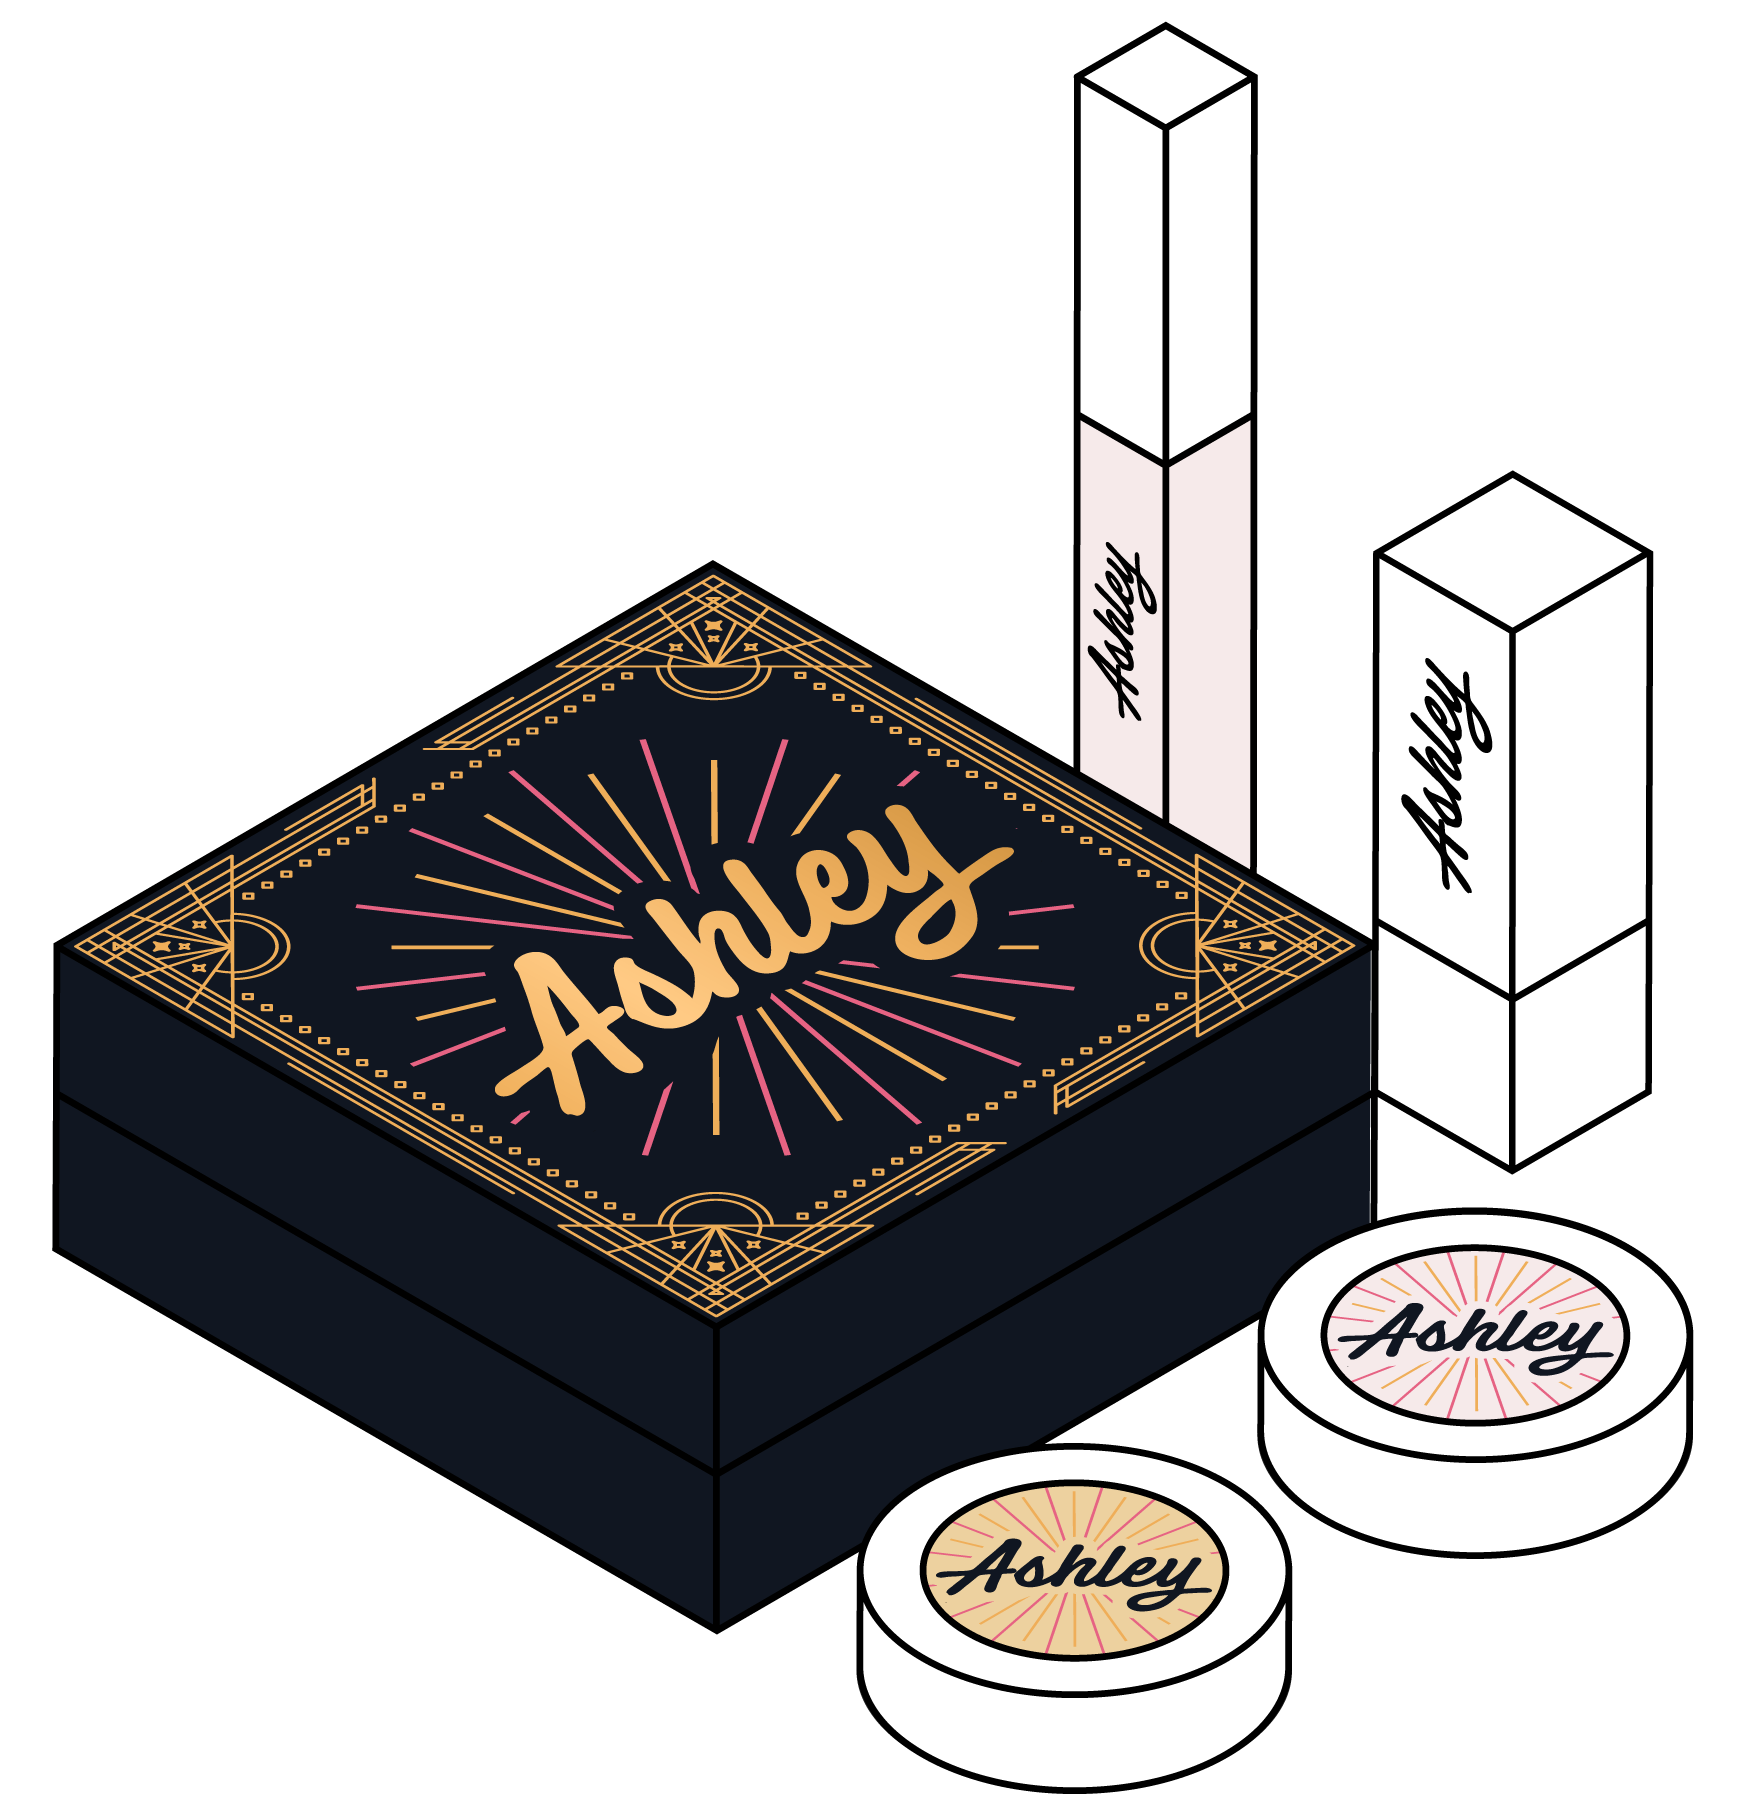 You can design your products, shipping labels, photos and shipping boxes! Create the perfect unboxing experience by the shipping boxes of your product deliveries.